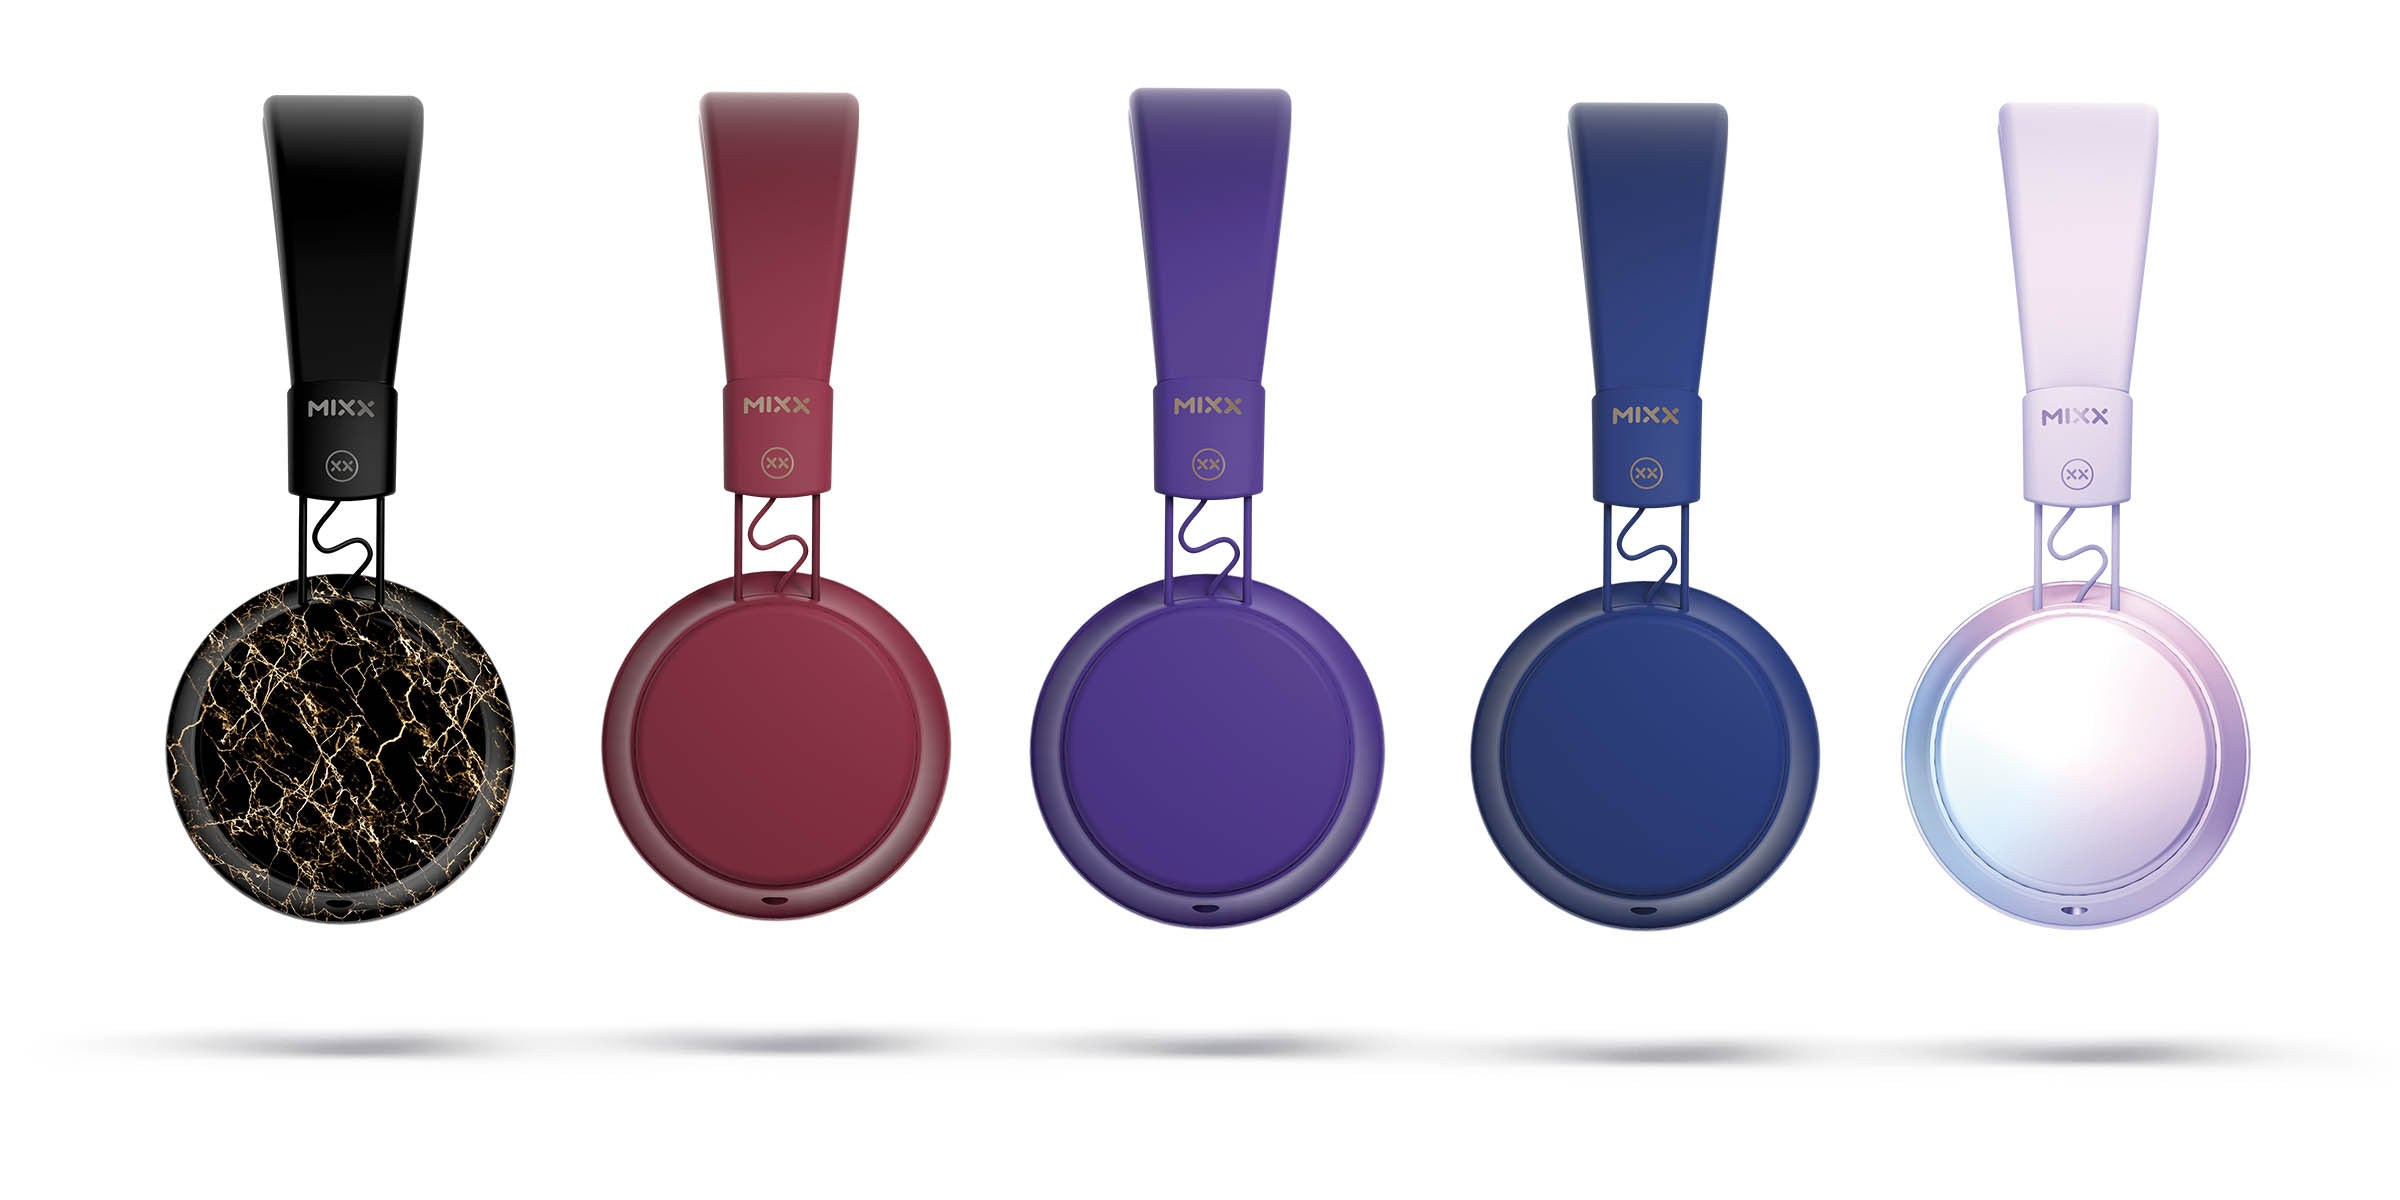 OX1 on ear headphones colour options